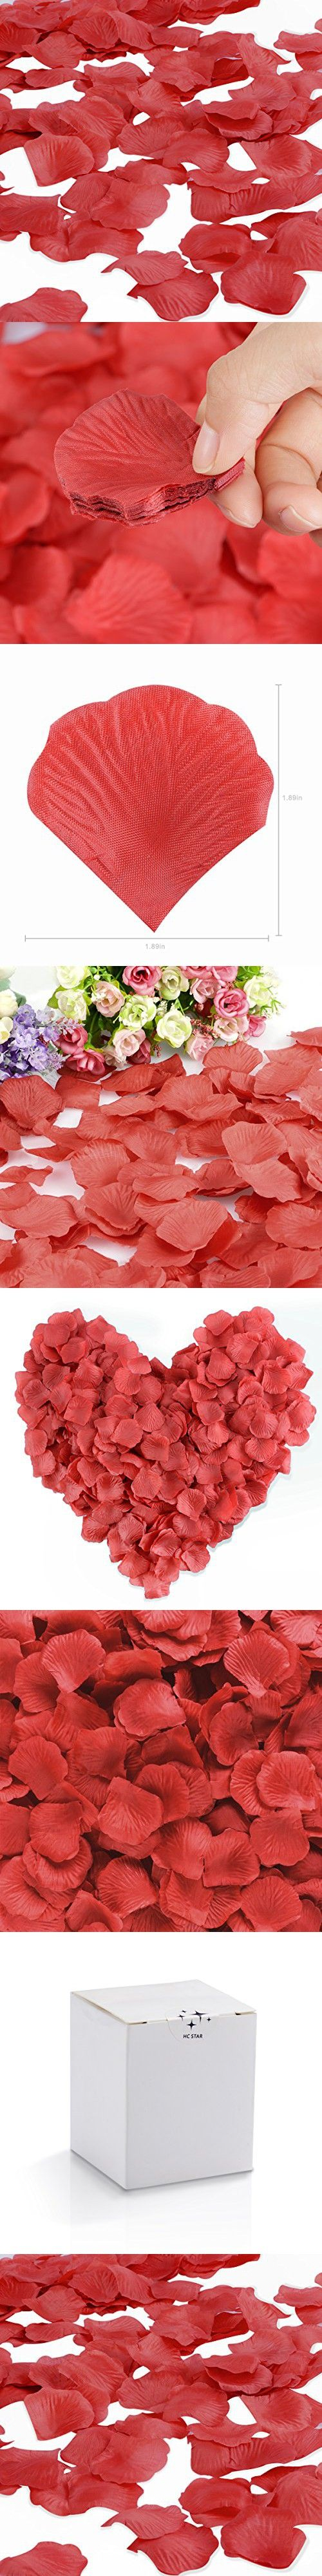 HCSTAR 1200pcs Silk Rose Petals Artificial Flower Wedding Party Vase Home Decor Bridal Petals Rose Favors,Winered